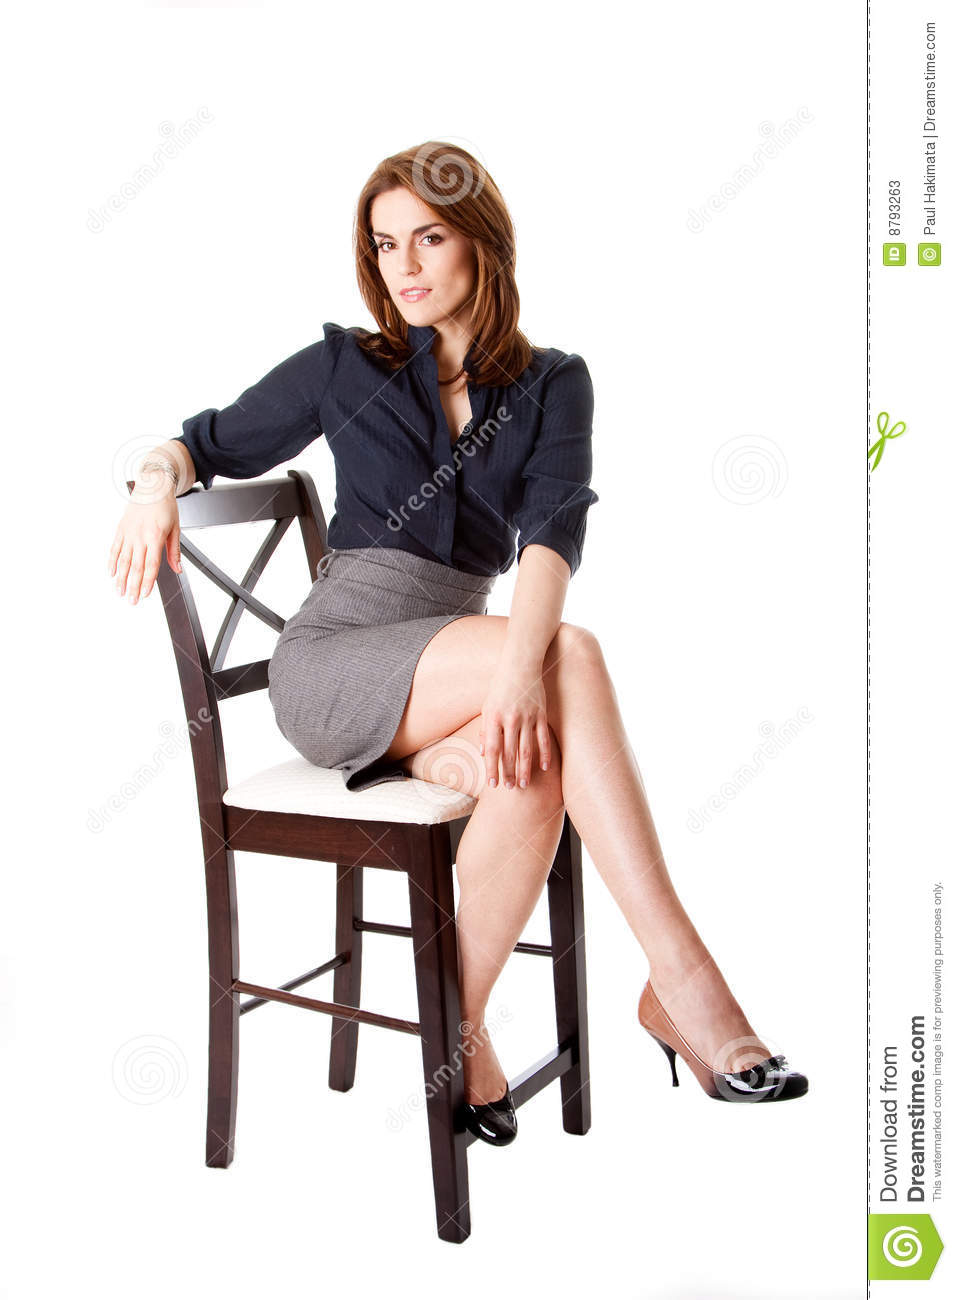 ... sitting wearing gray skirt and blue blouse with hand on leg, isolated